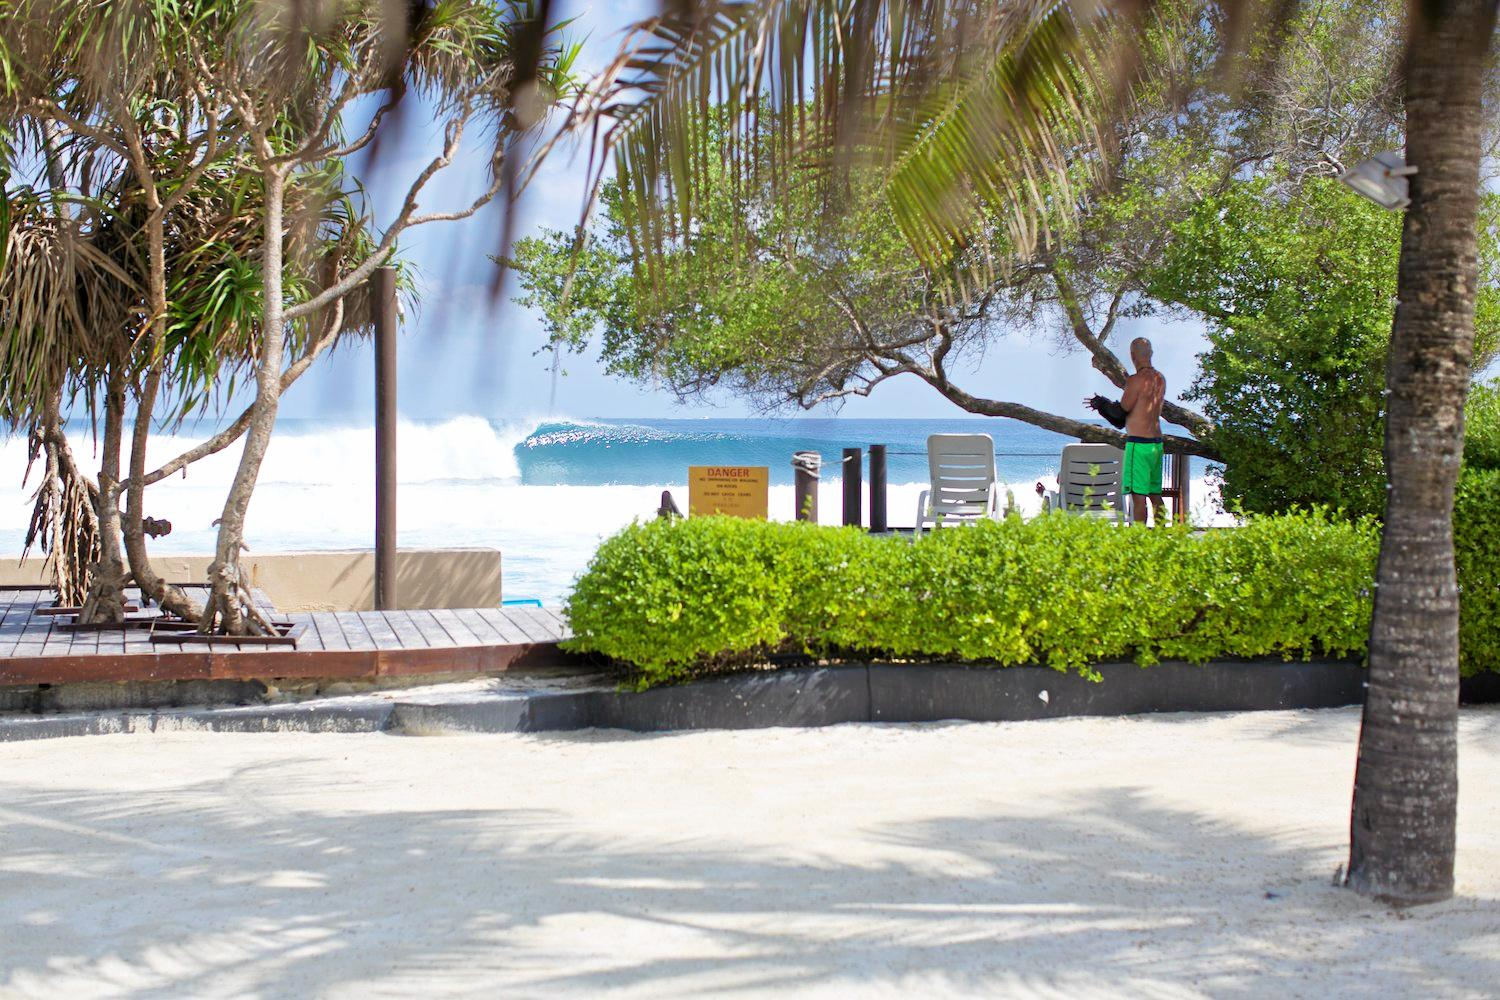 LOHIS surf break on North Male Island in the Maldives is another popular destination in the World Surfaris portfolio